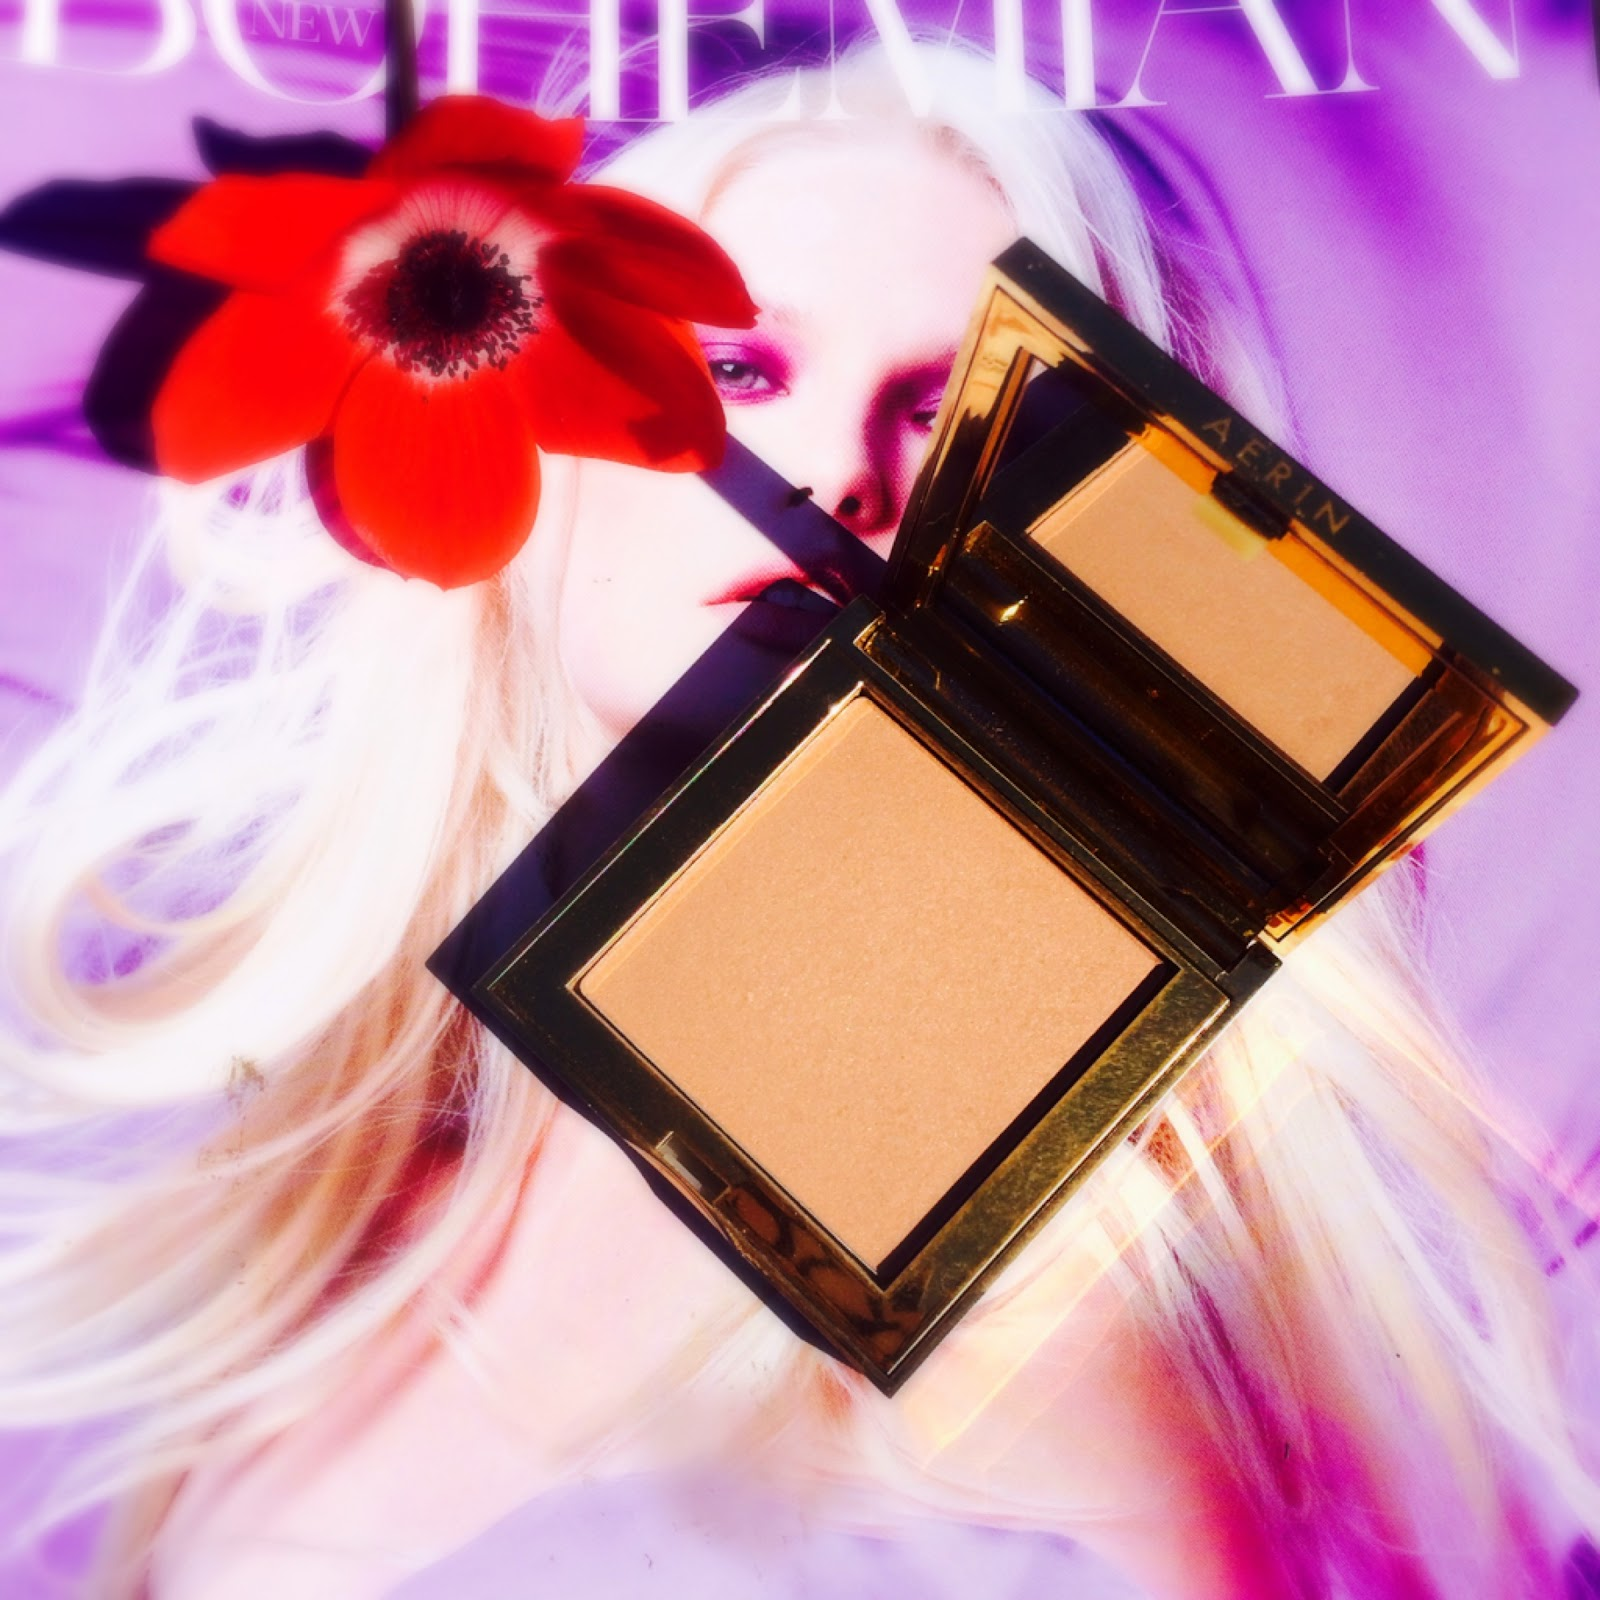 Aerin Pretty Bronze Illuminating Powder